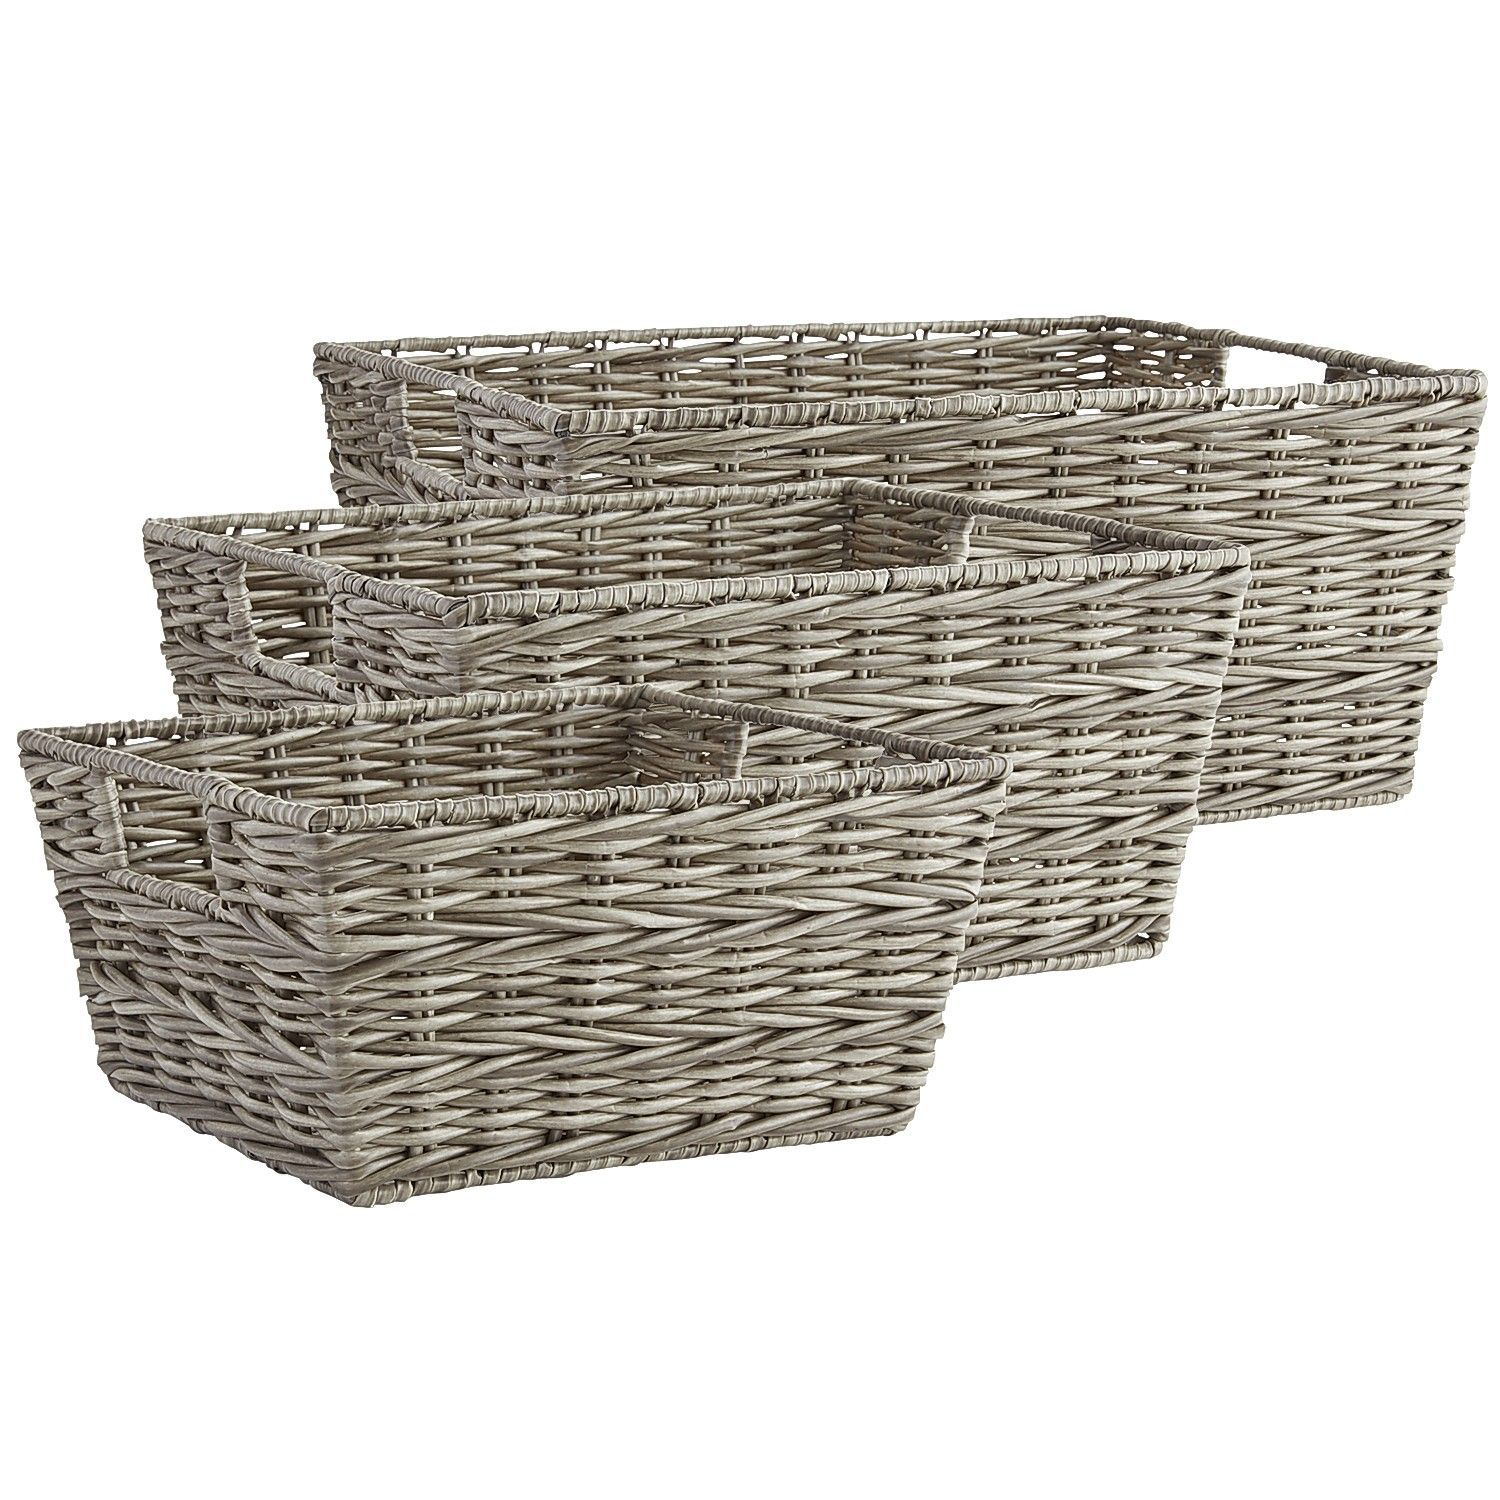 Collin Braid Shelf Baskets Gray Shelf Baskets Storage Wicker Shelf Basket Shelves